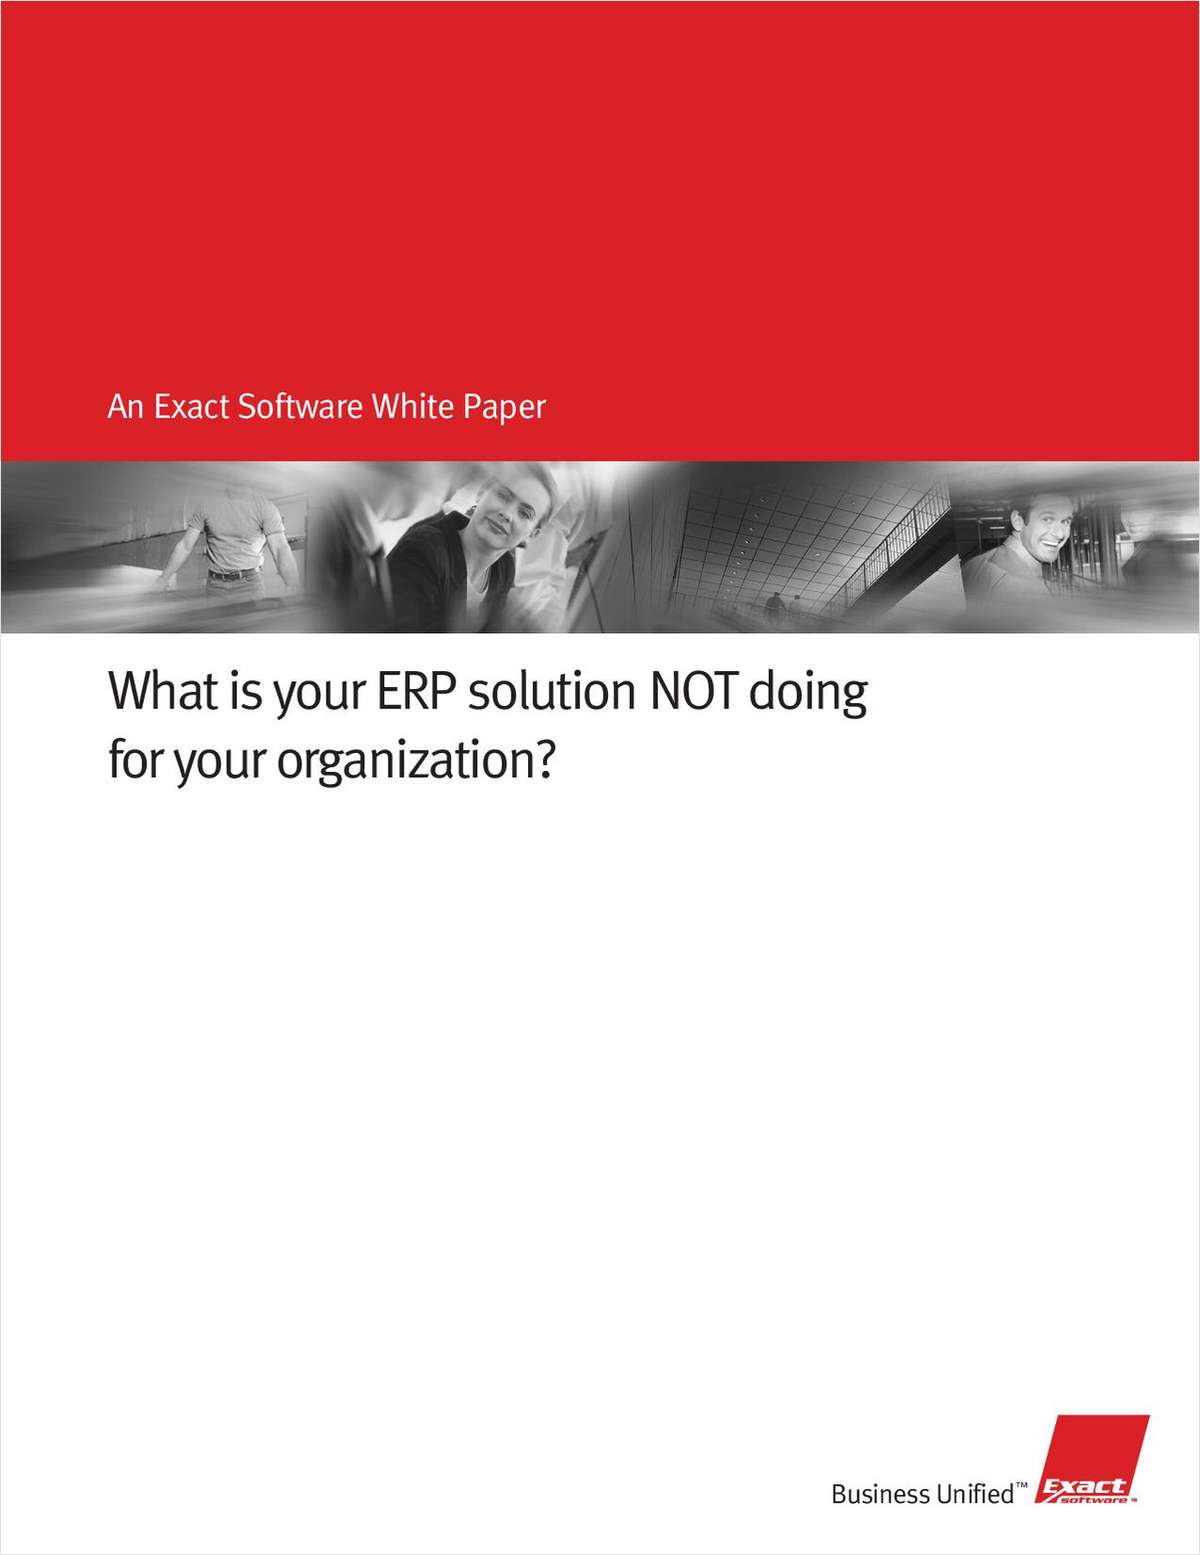 What is your ERP solution NOT doing for your organization?